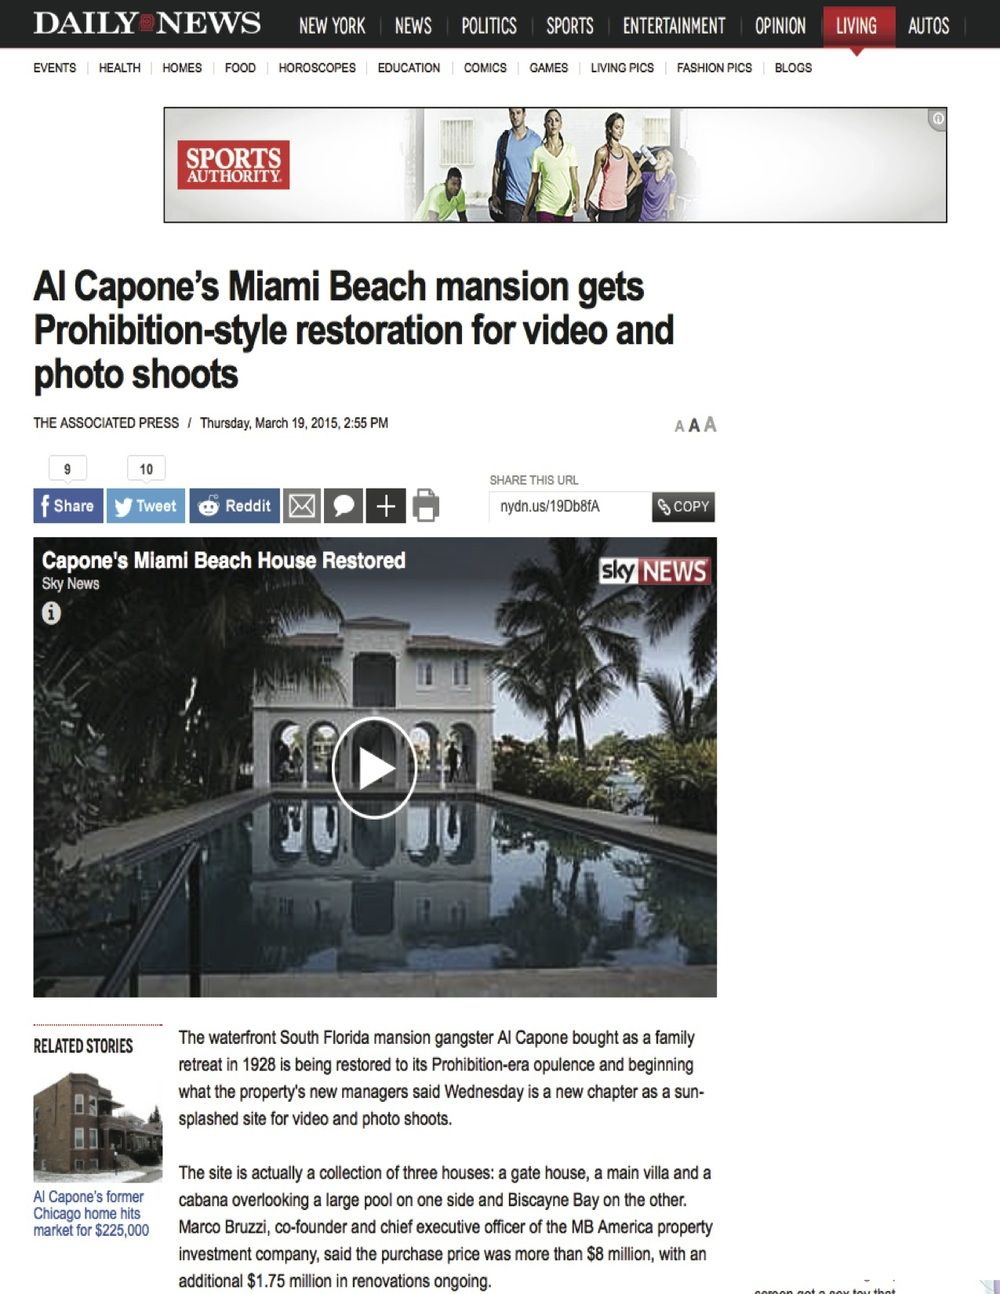 "<p><strong>Daily News</strong><a href=""http://www.nydailynews.com/life-style/al-capone-miami-beach-mansion-restoration-article-1.2155650"" target=""_blank"">Watch Video →</a></p>"